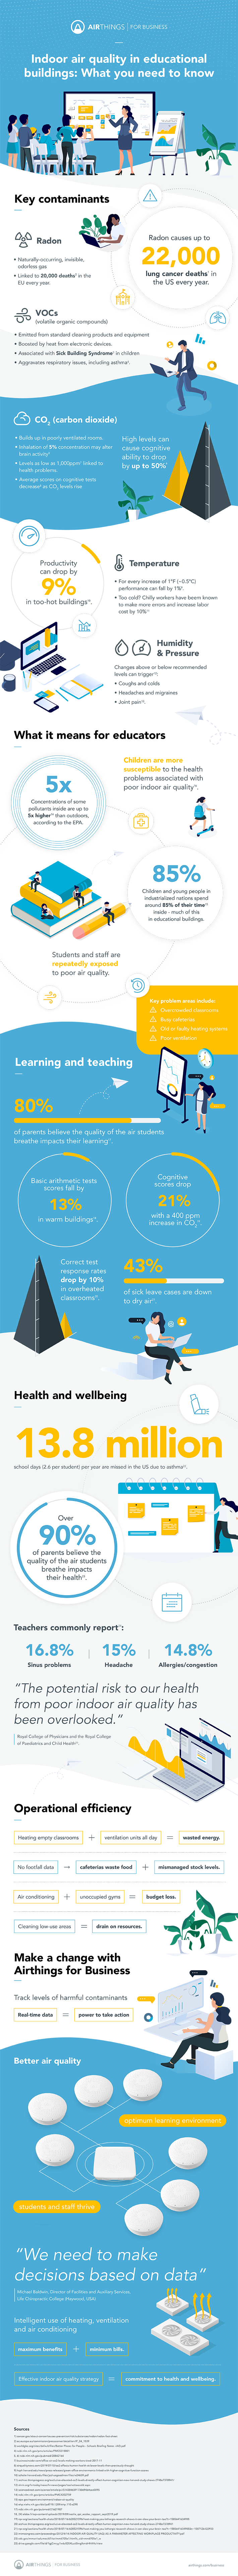 Infographic - Indoor air quality in educational buildings: What you need to know